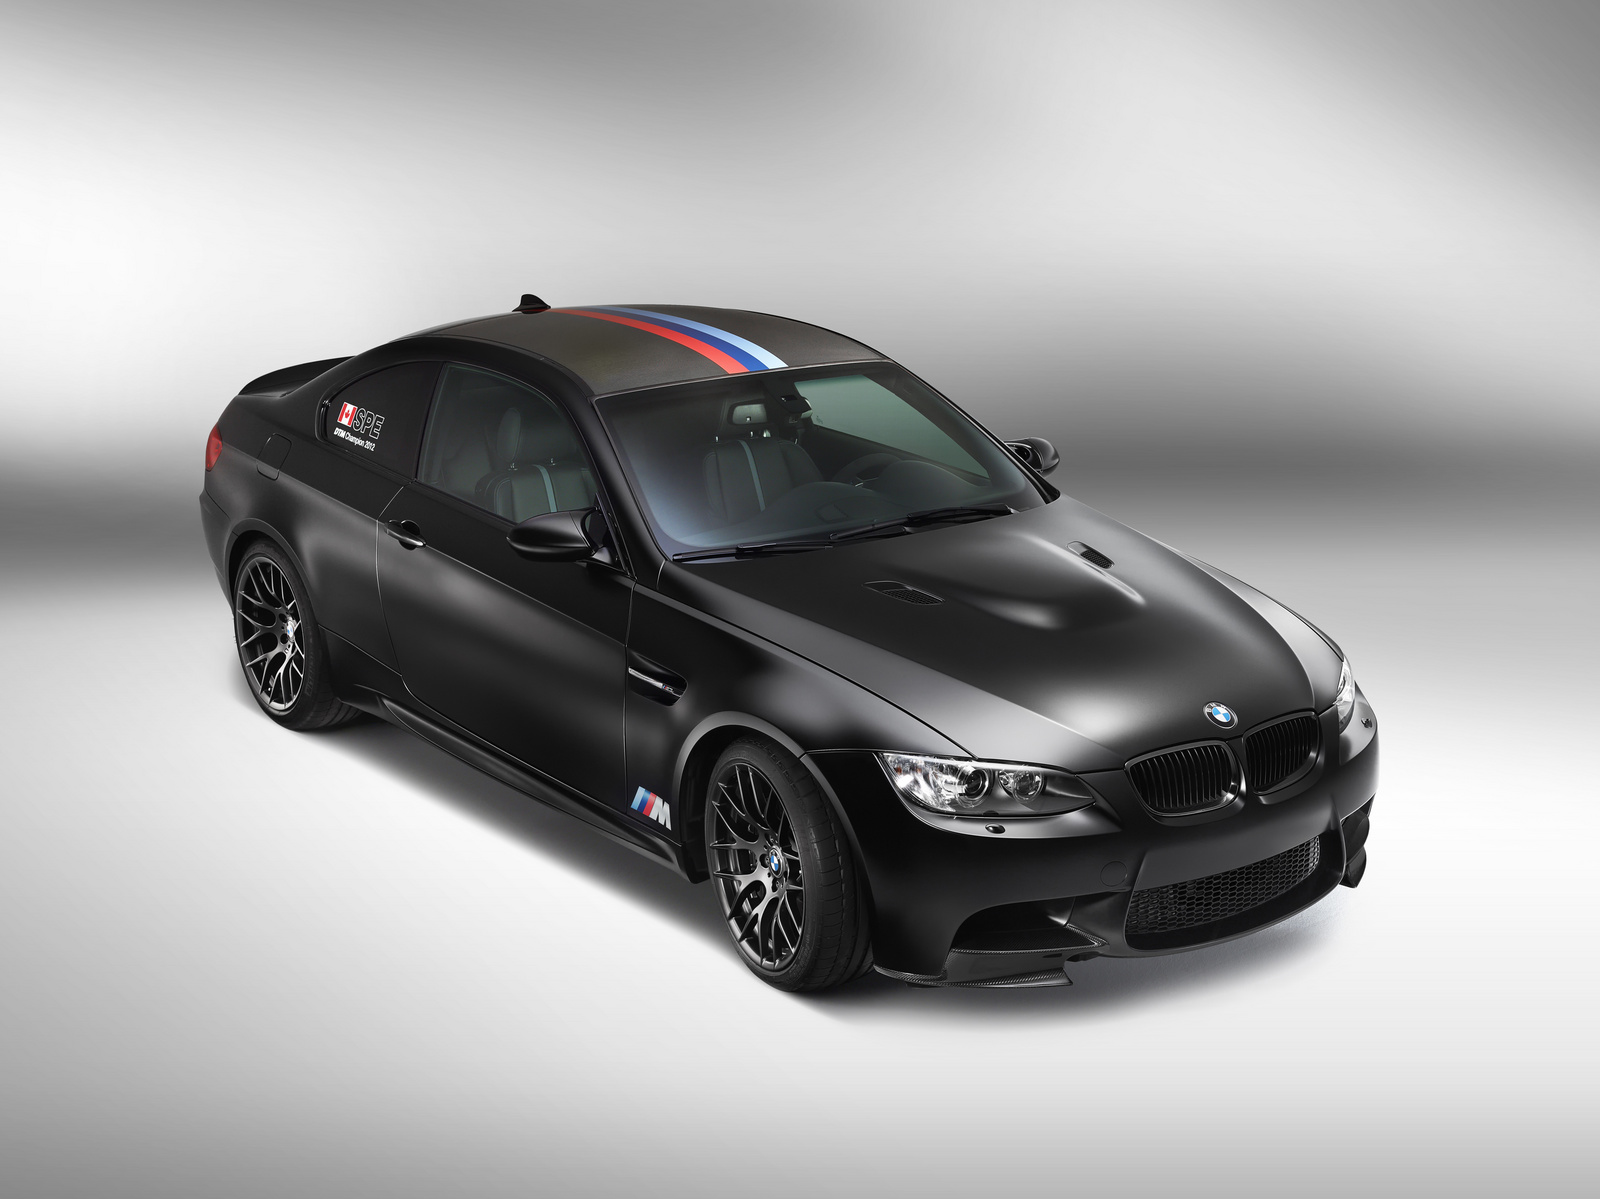 2013 Bmw M3 Review Cargurus